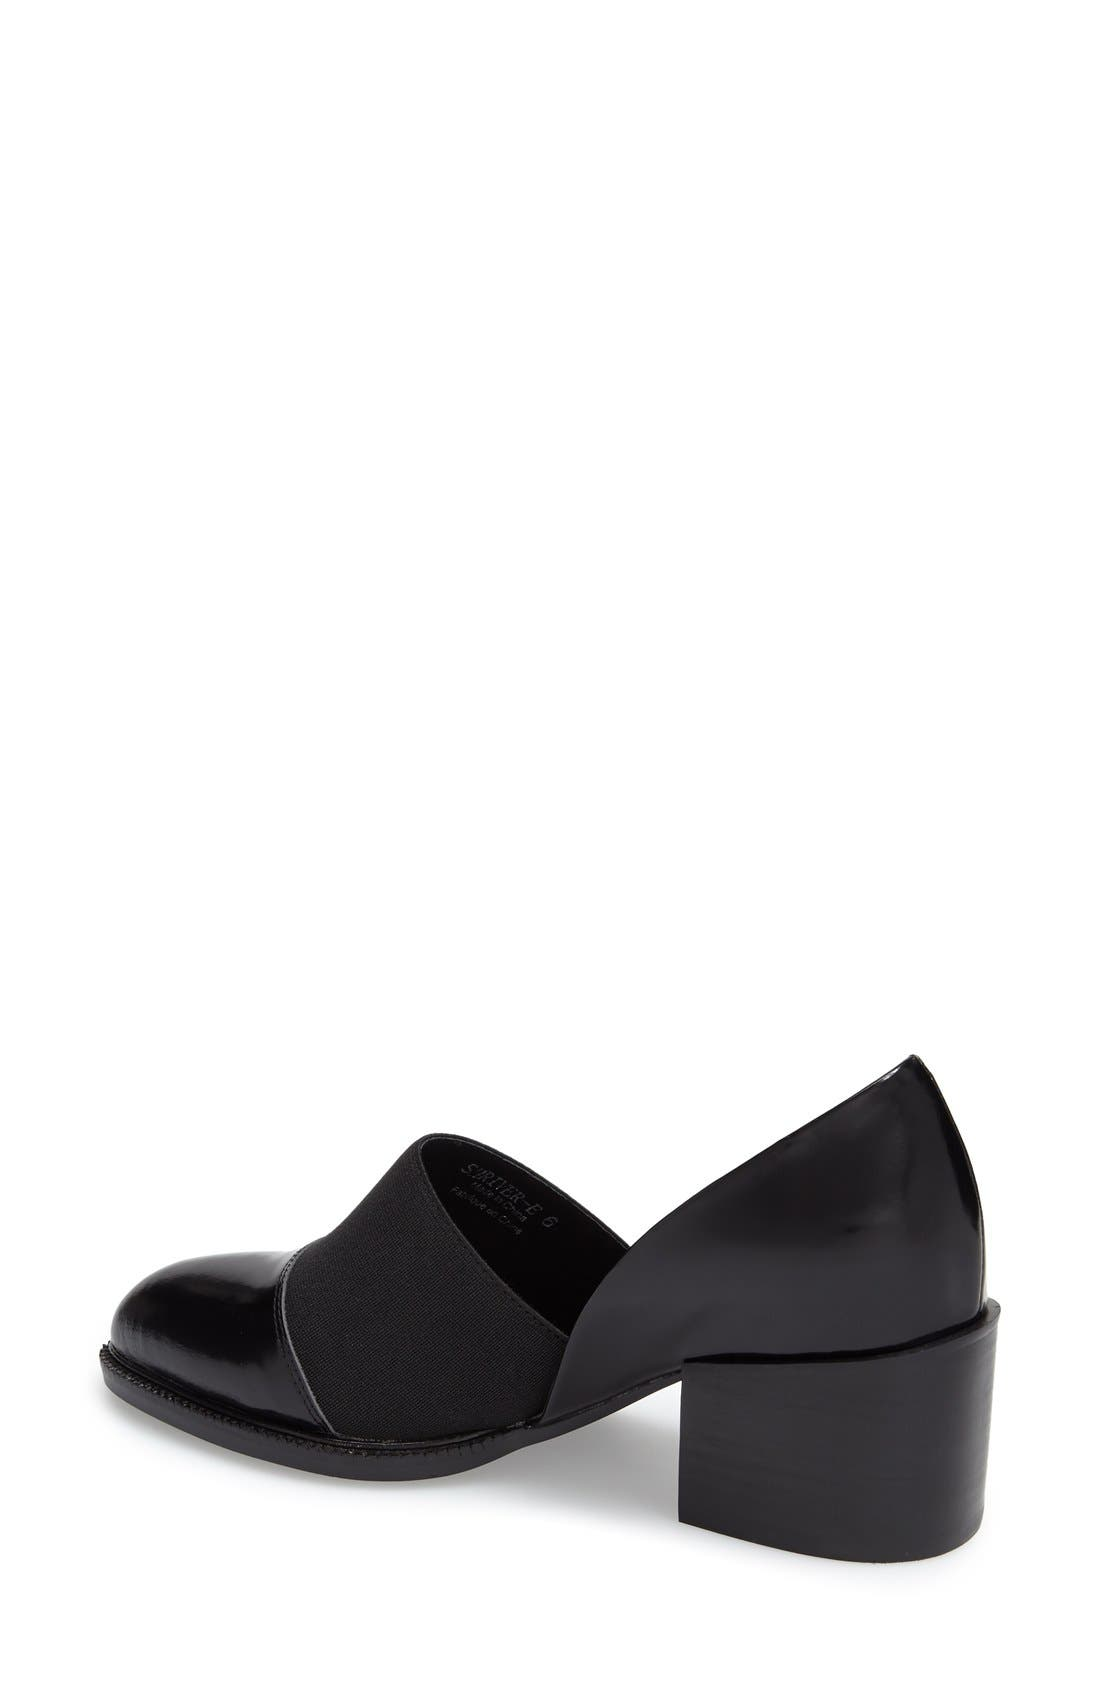 Alternate Image 2  - Jeffrey Campbell 'Shriver' Almond Toe Loafer (Women)